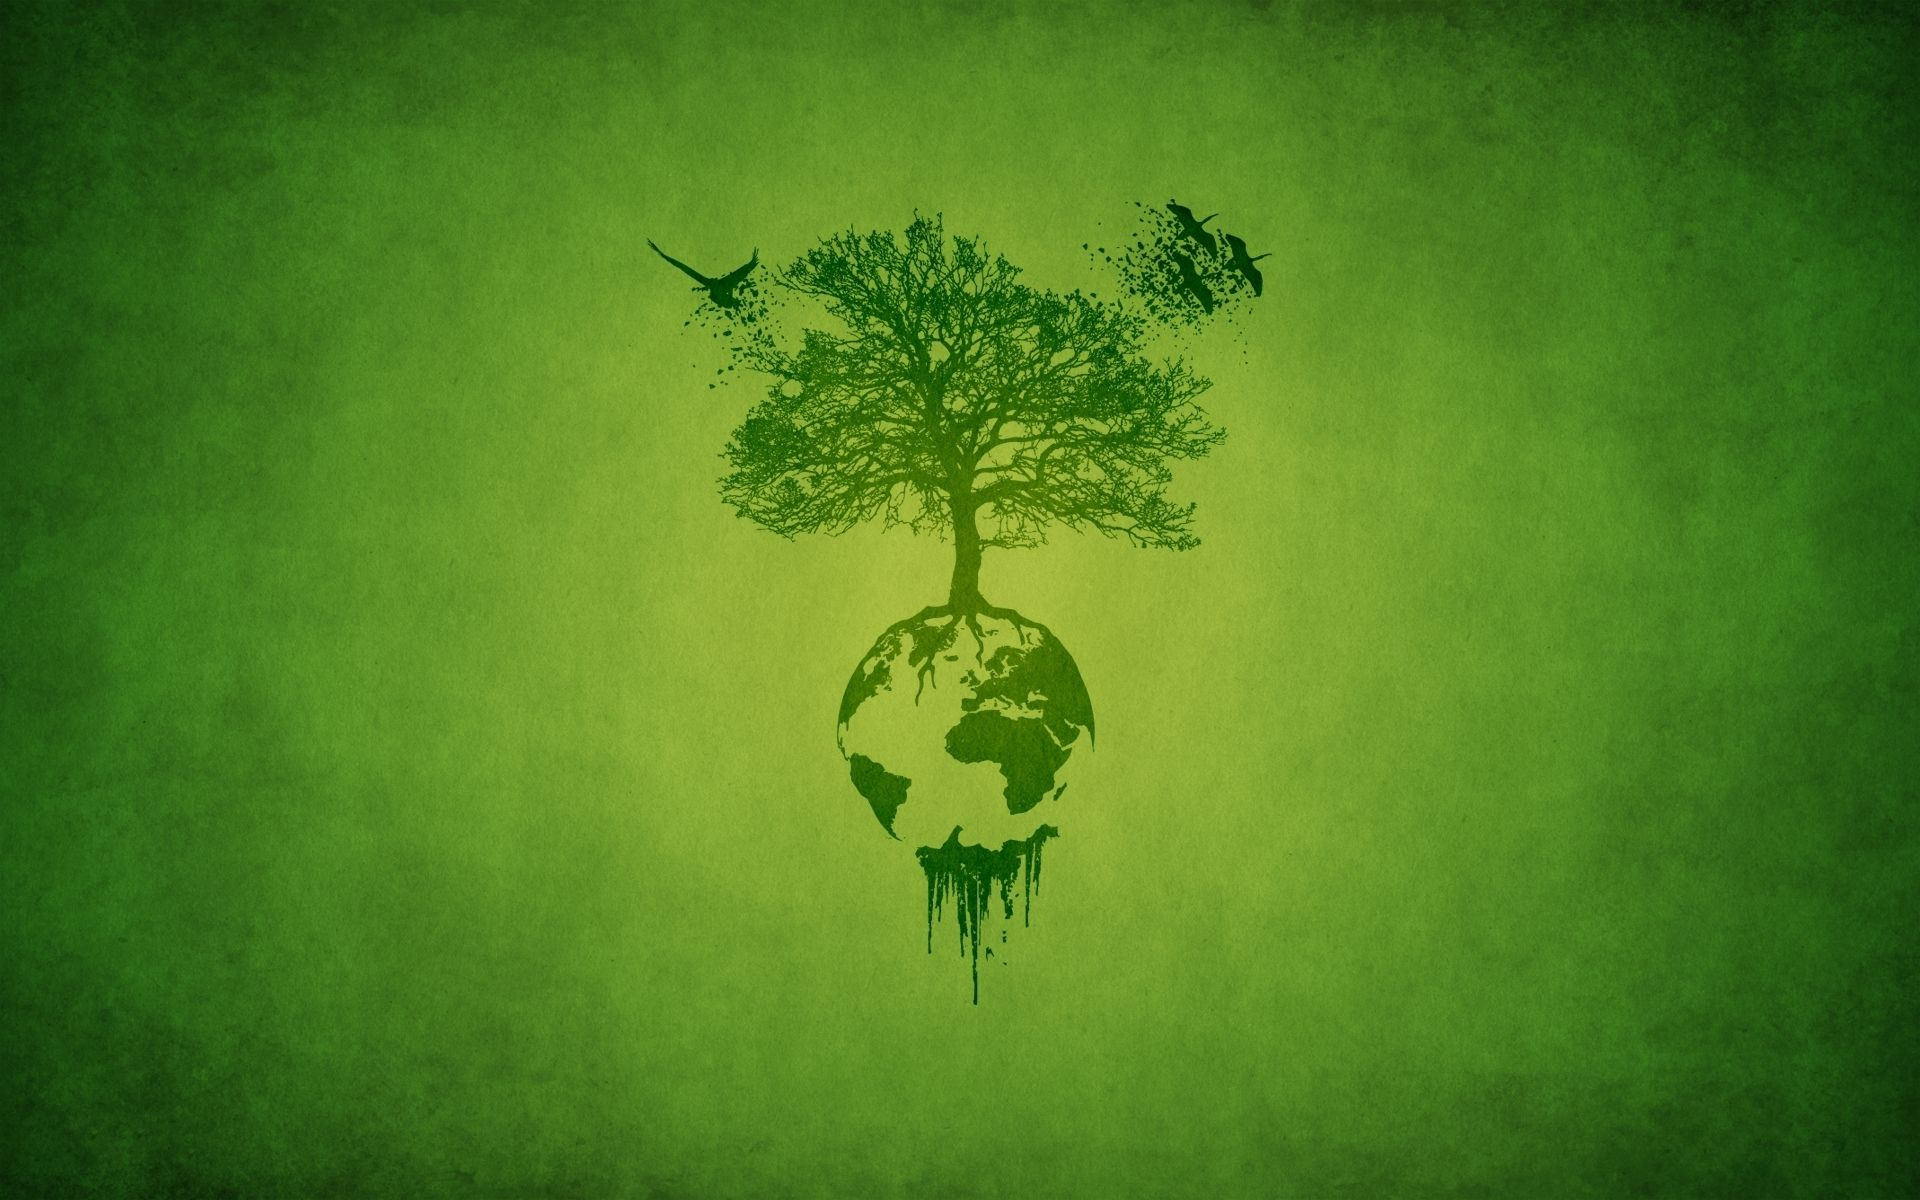 the world tree   world tree   Pinterest   Planets and Wallpaper